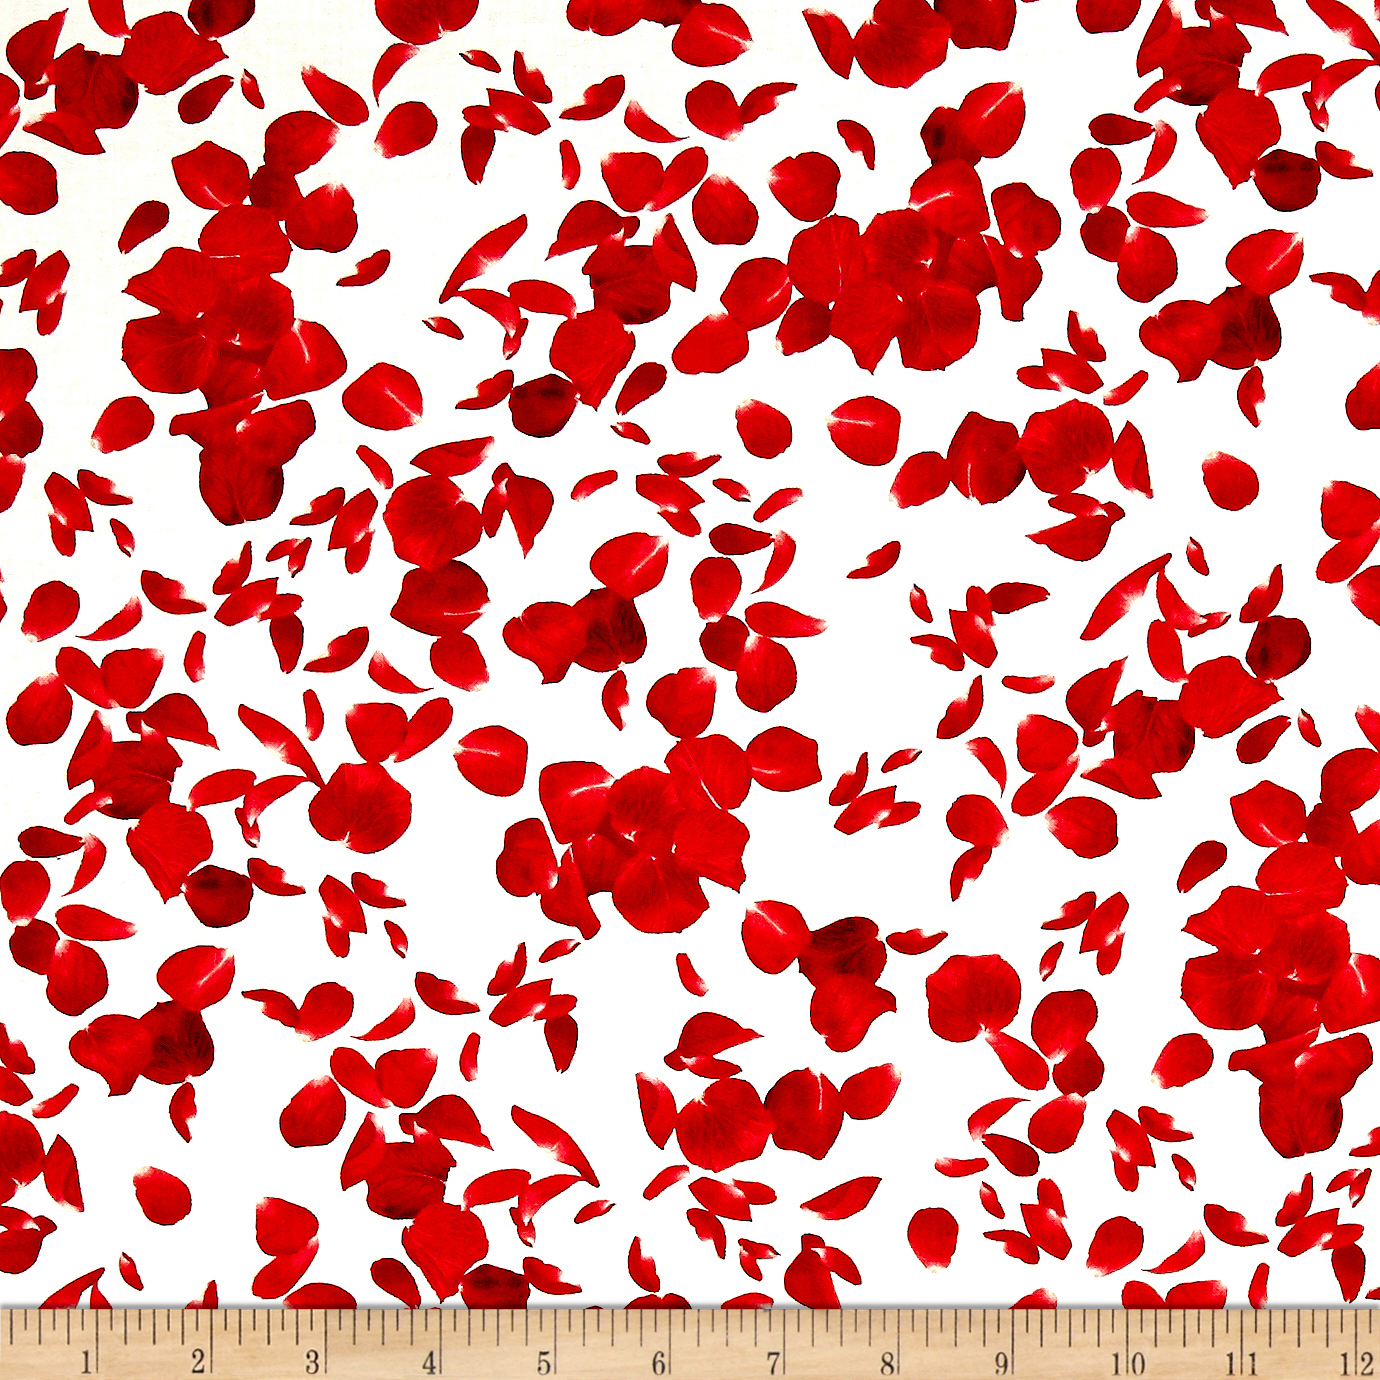 Timeless Treasures Glamour Falling Rose Petals Cream Fabric